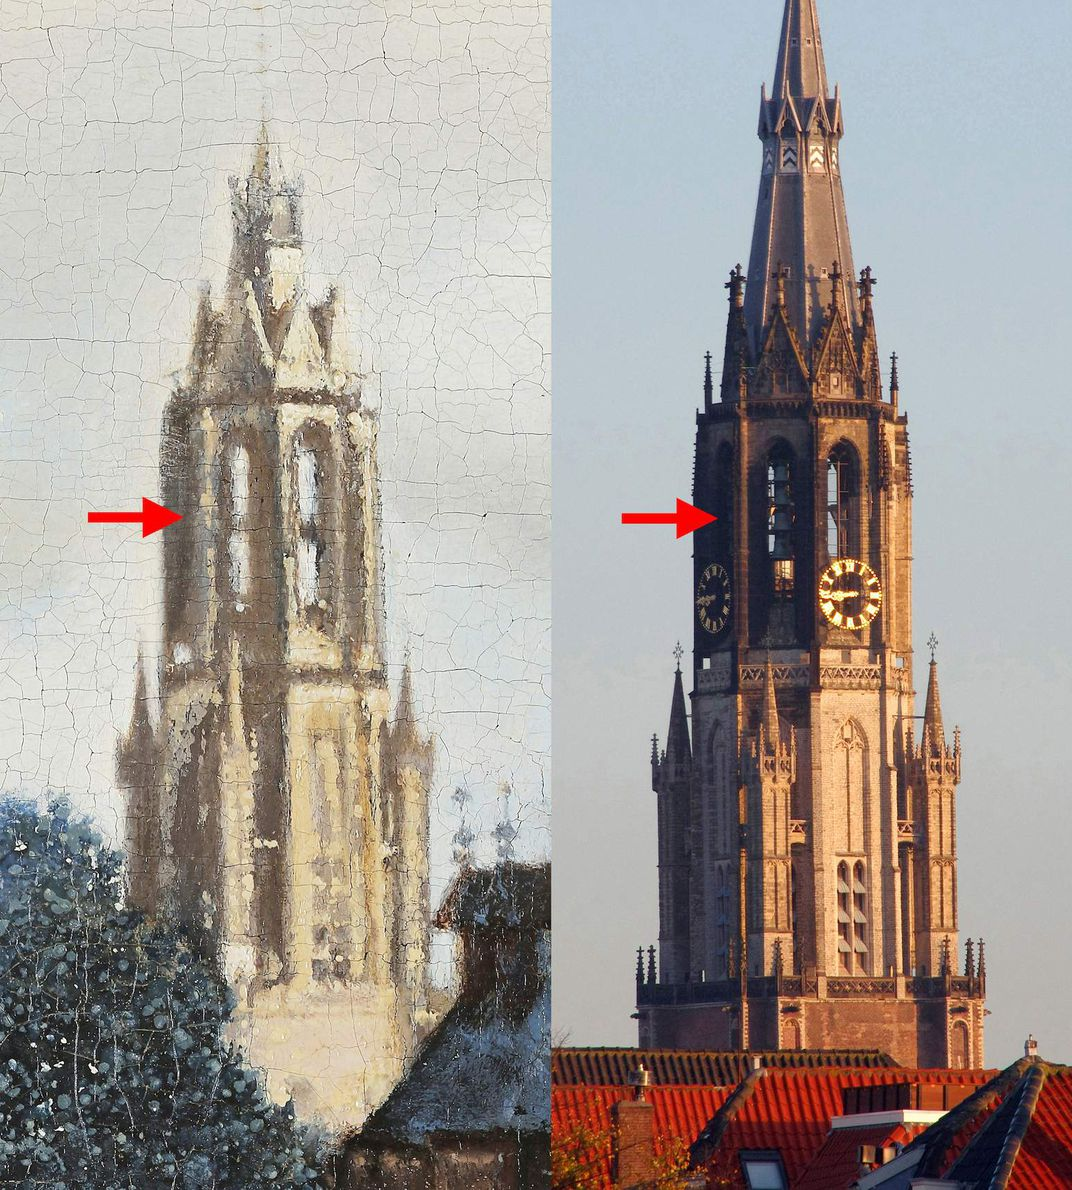 Composite view of Nieuwe Kerk  tower